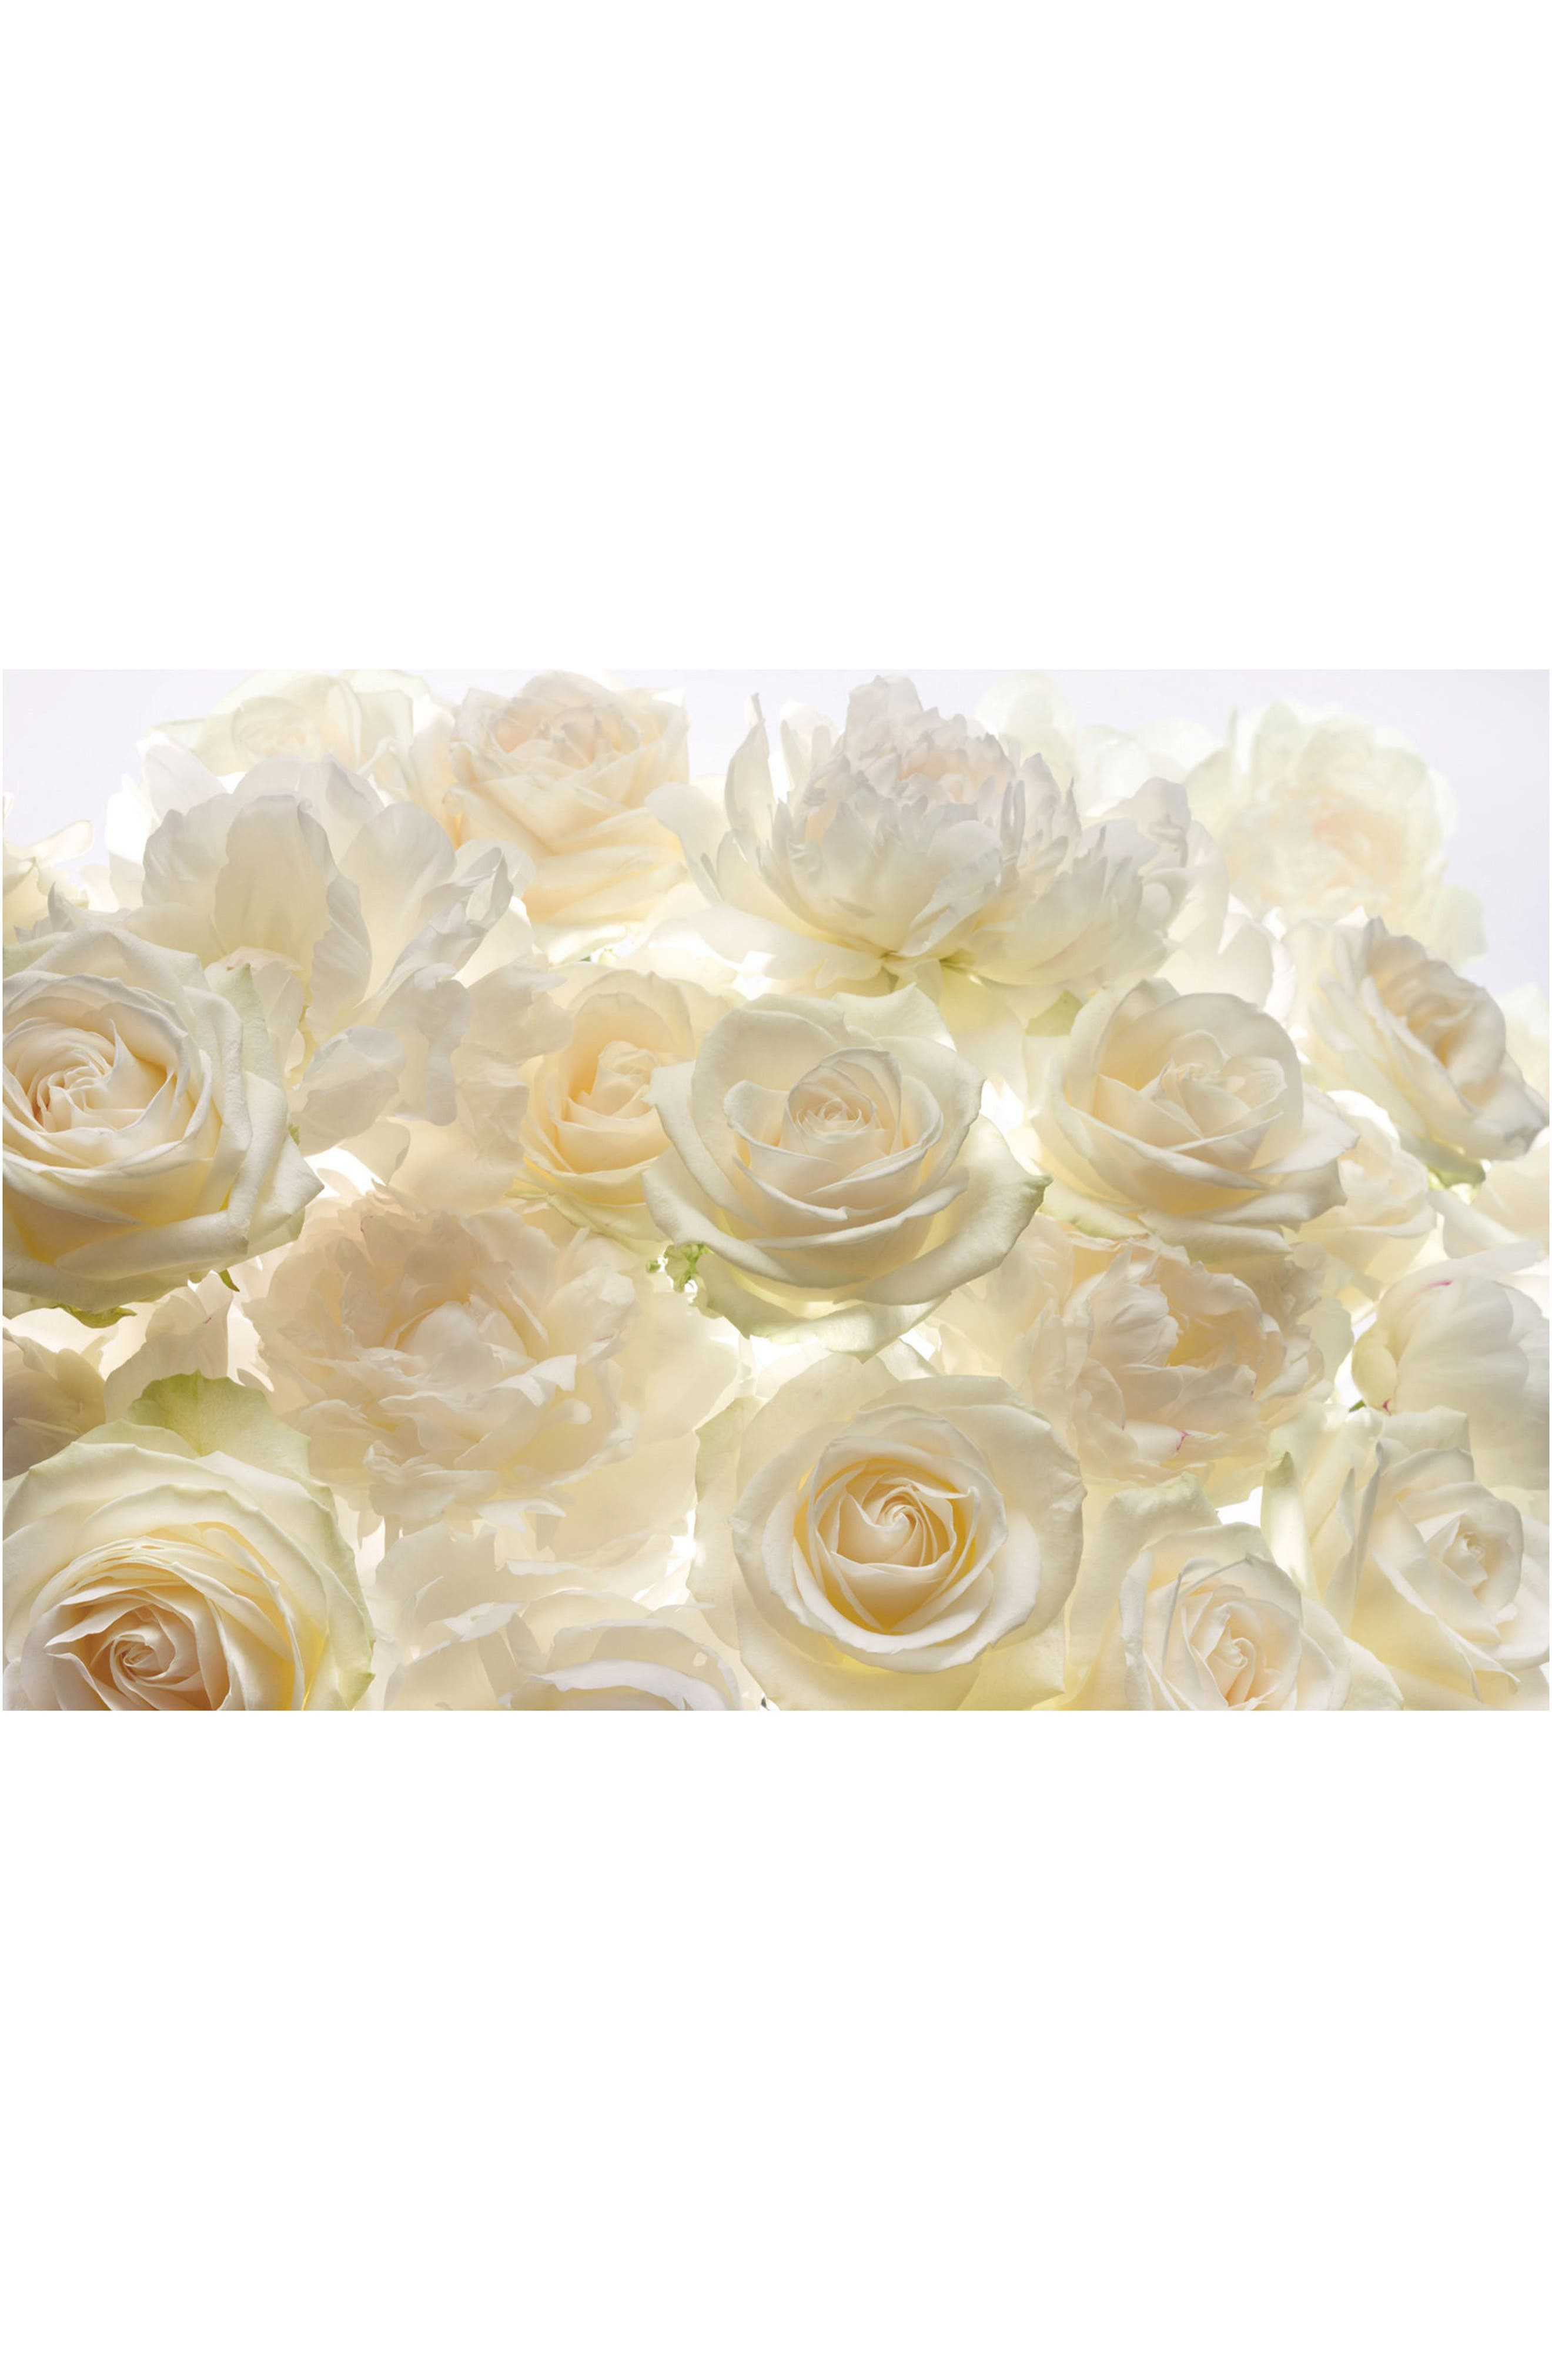 Main Image - Wallpops Ivory Rose Wall Mural